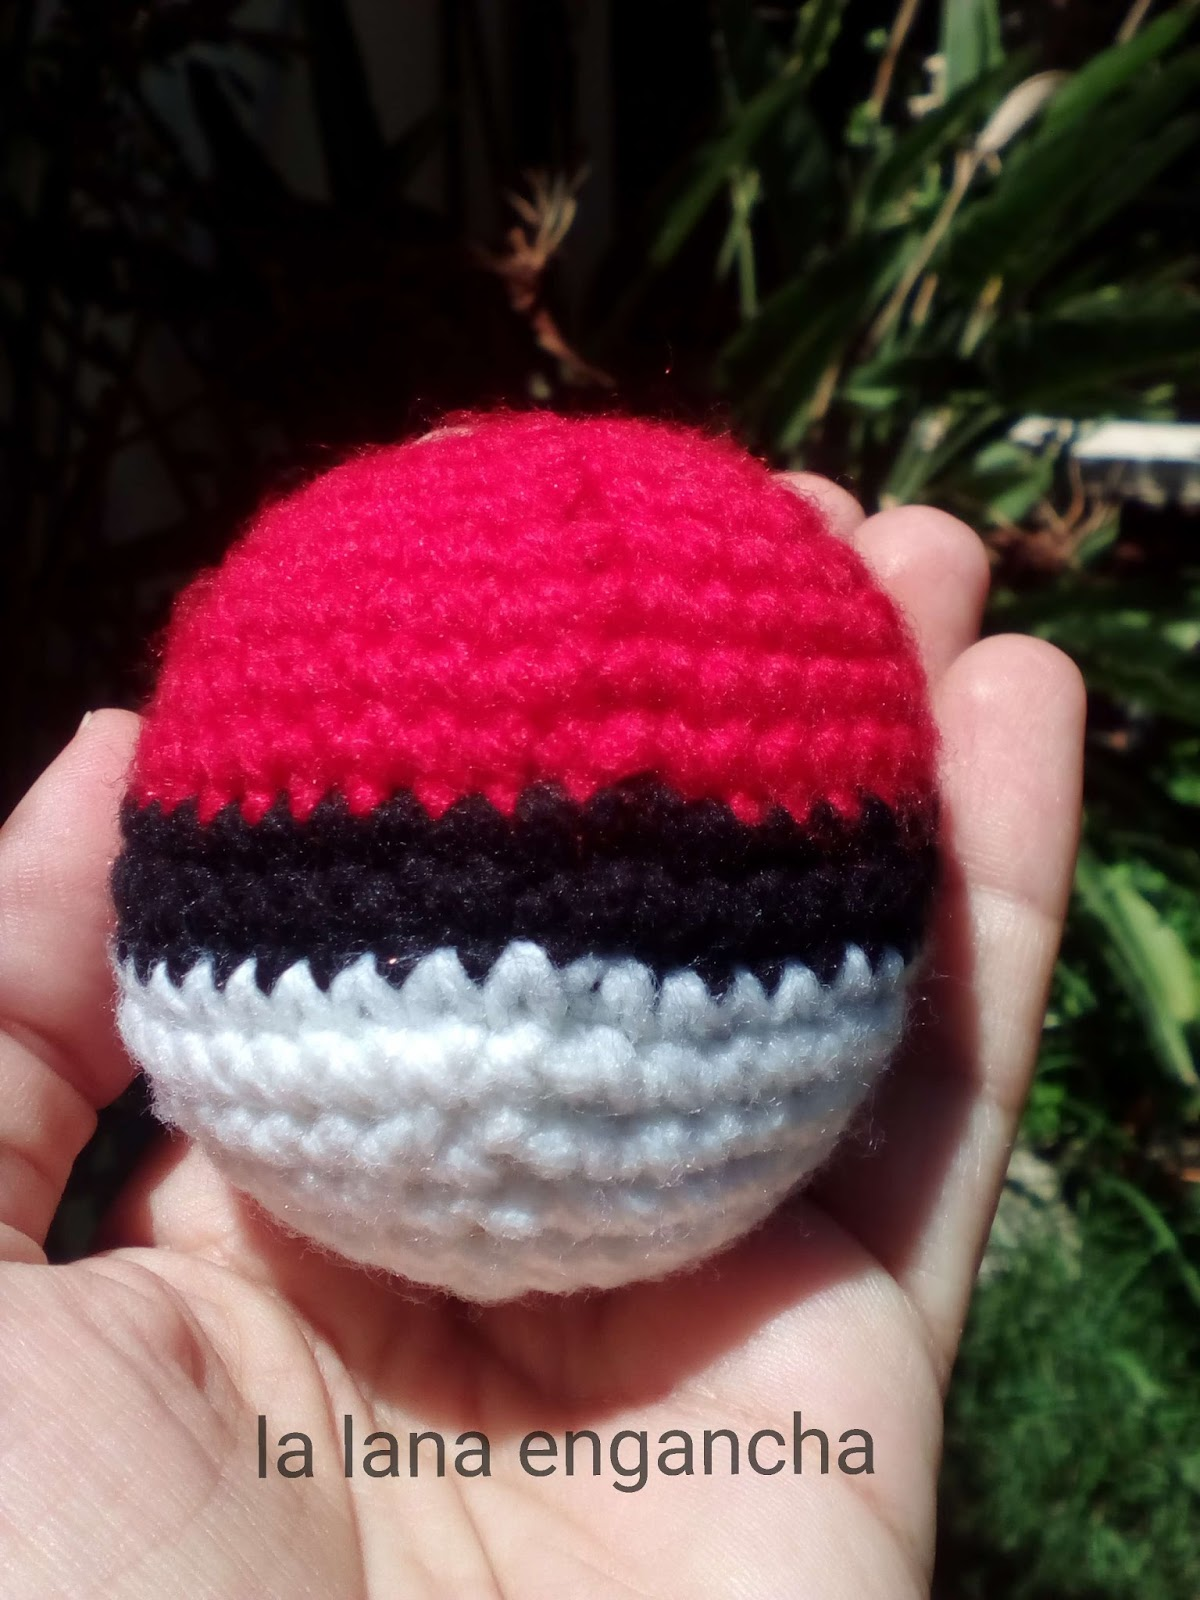 La lana engancha: POKEBALL